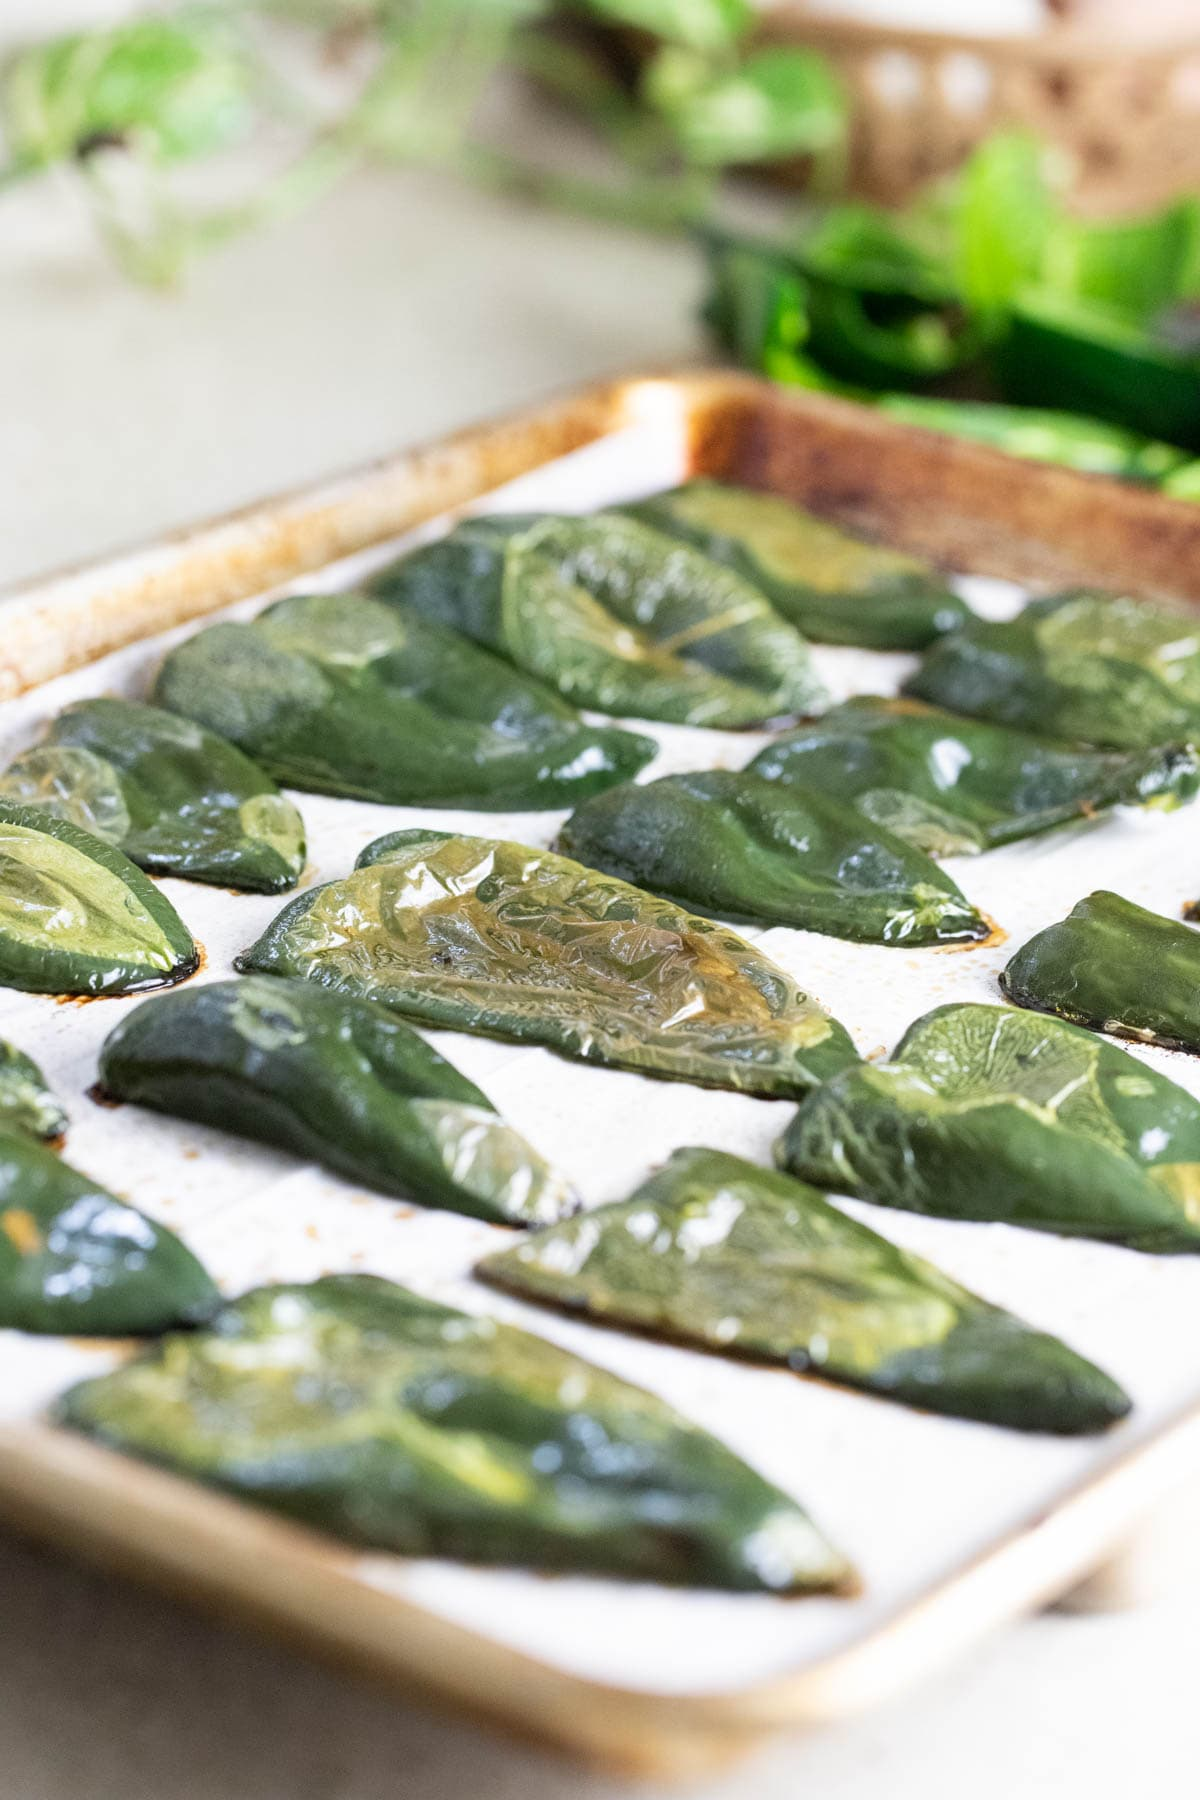 Roasting poblano peppers before canning them.